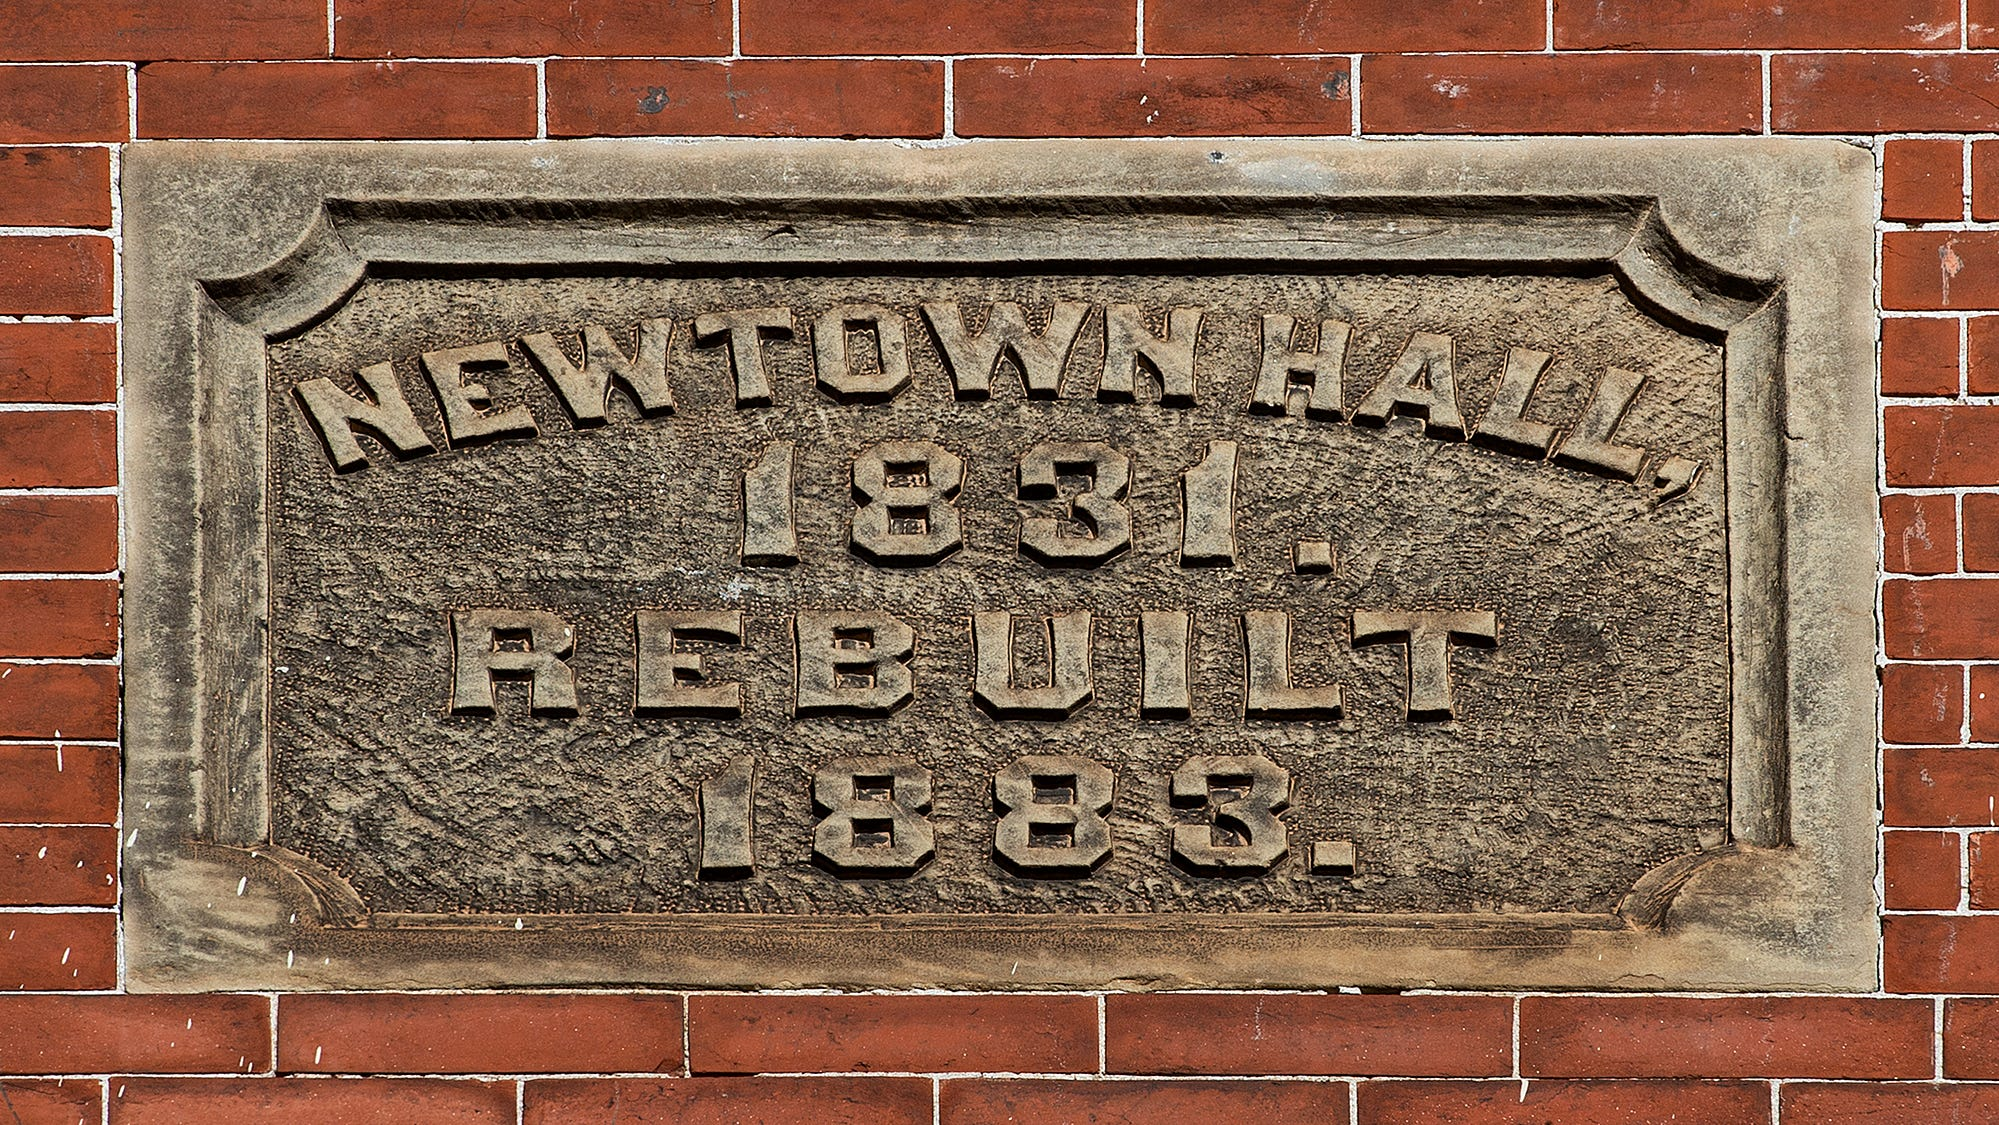 Historical marker on the front facade of the Newtown Theater.